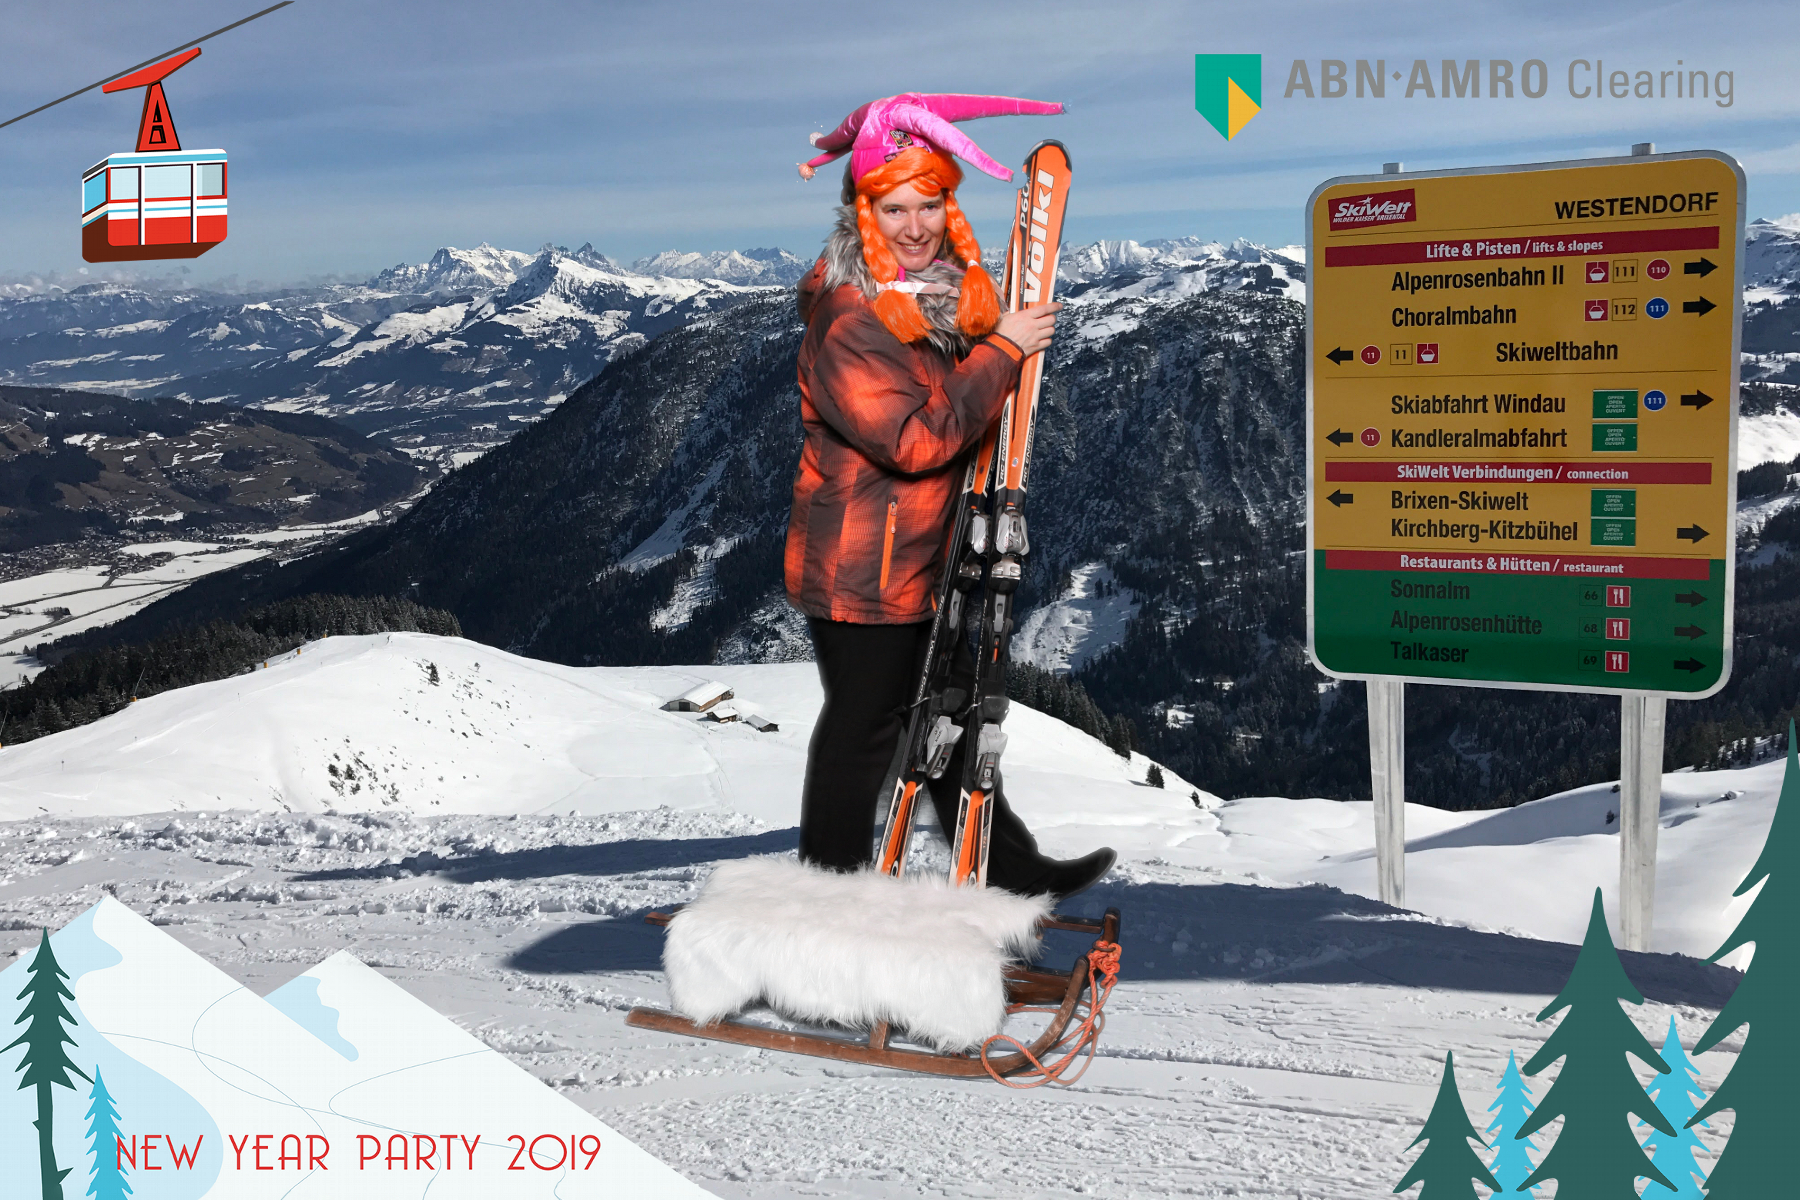 Apres-ski party greenscreen